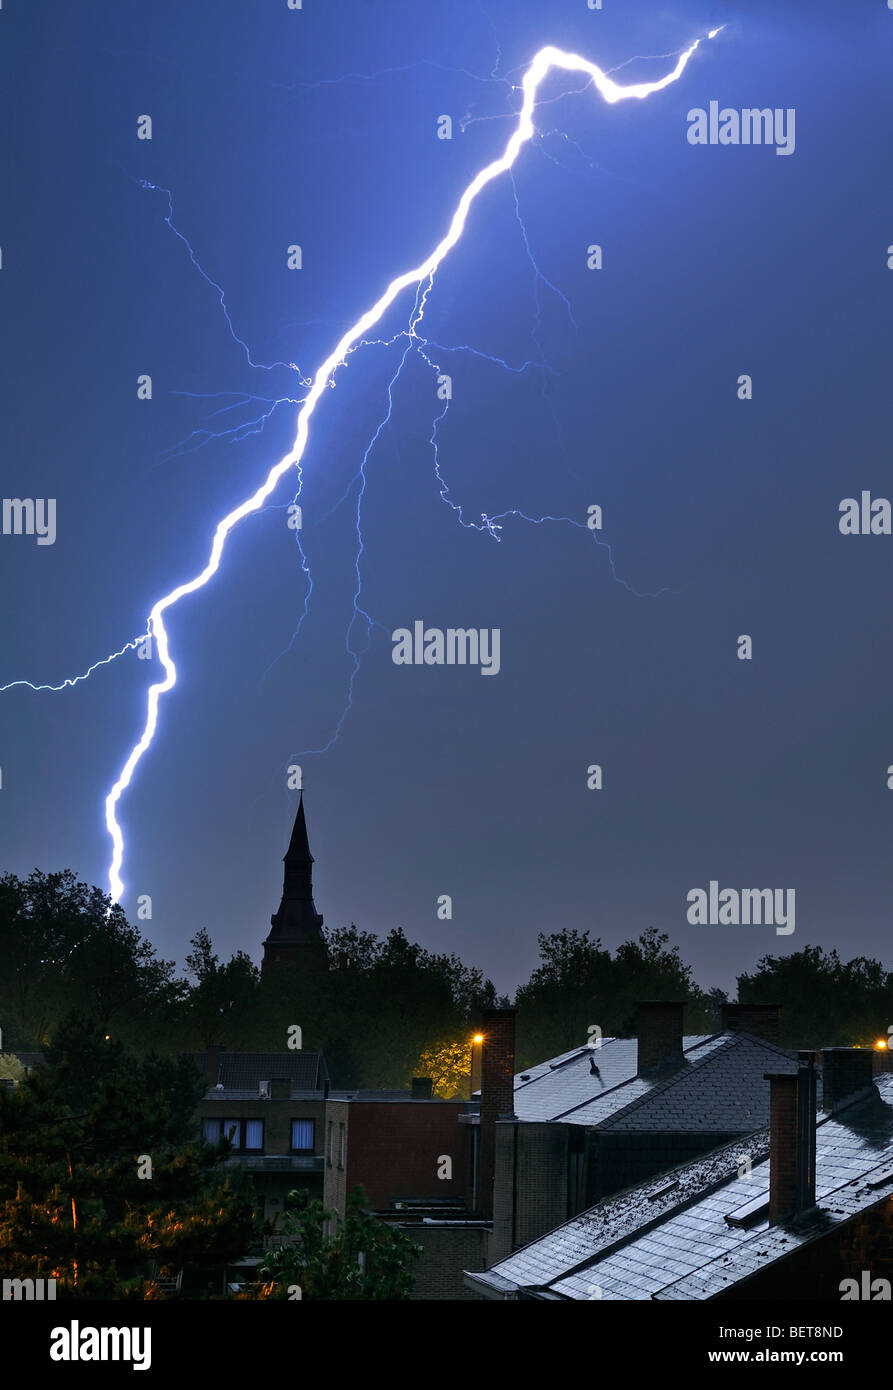 Lightning bolt over houses and church tower at night during thunderstorm Stock Photo